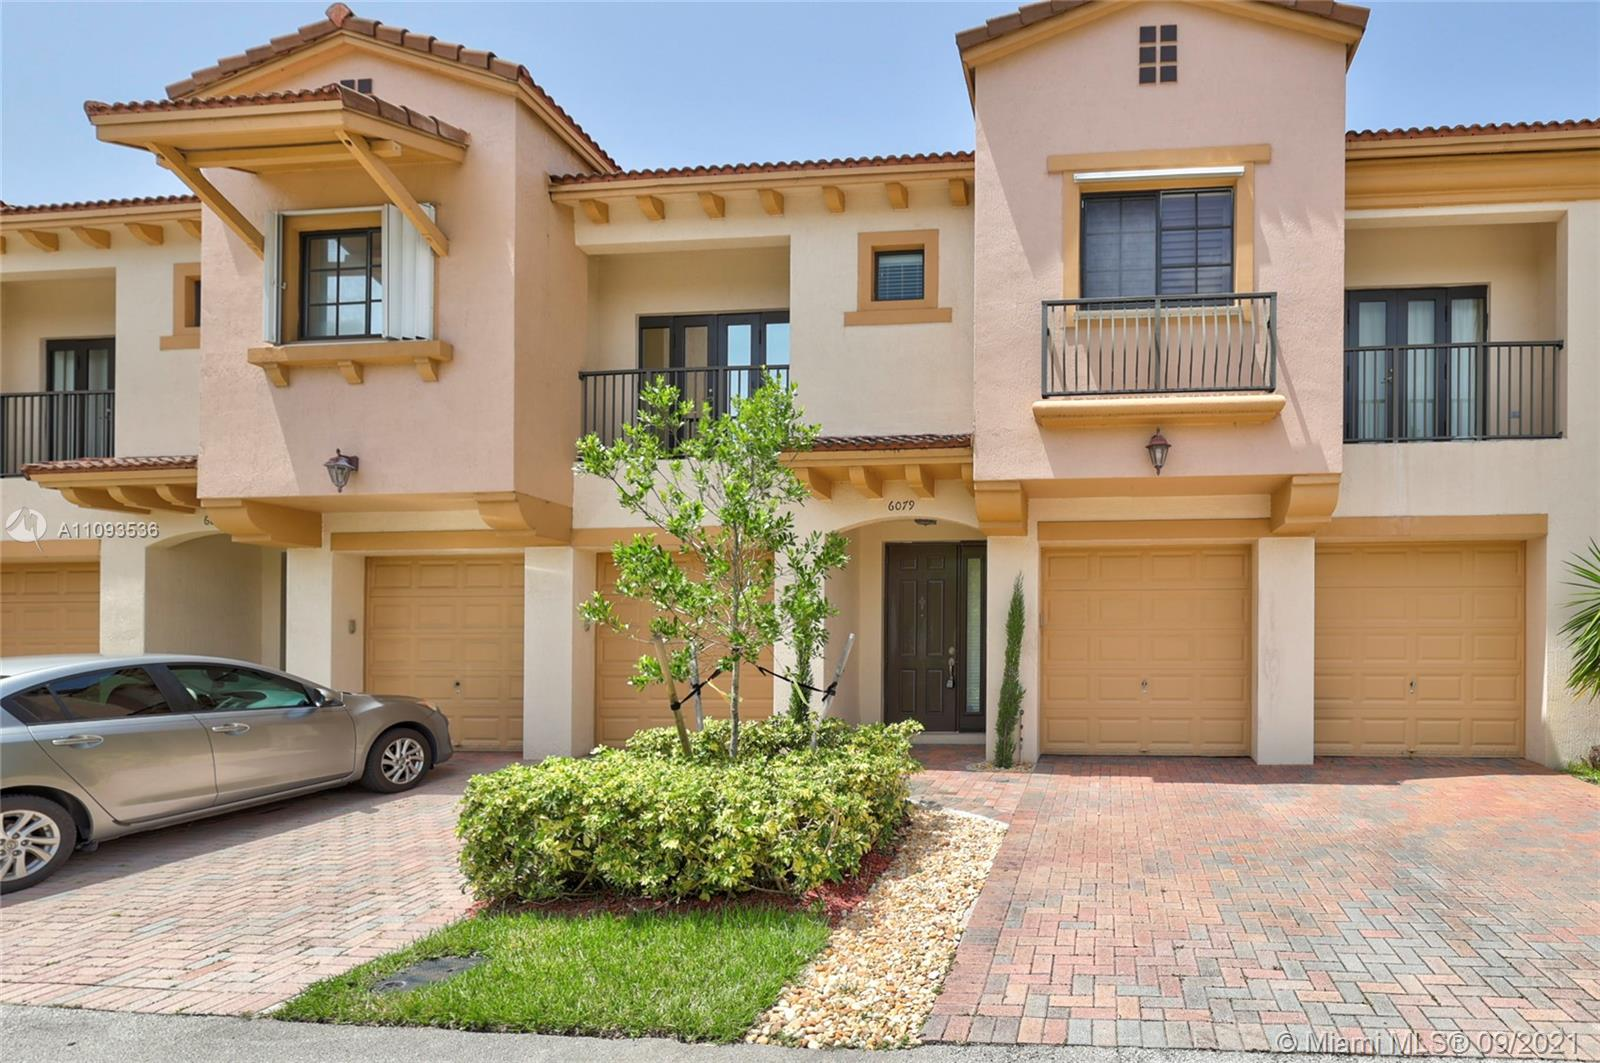 Listing A11093536 - Large Photo # 3